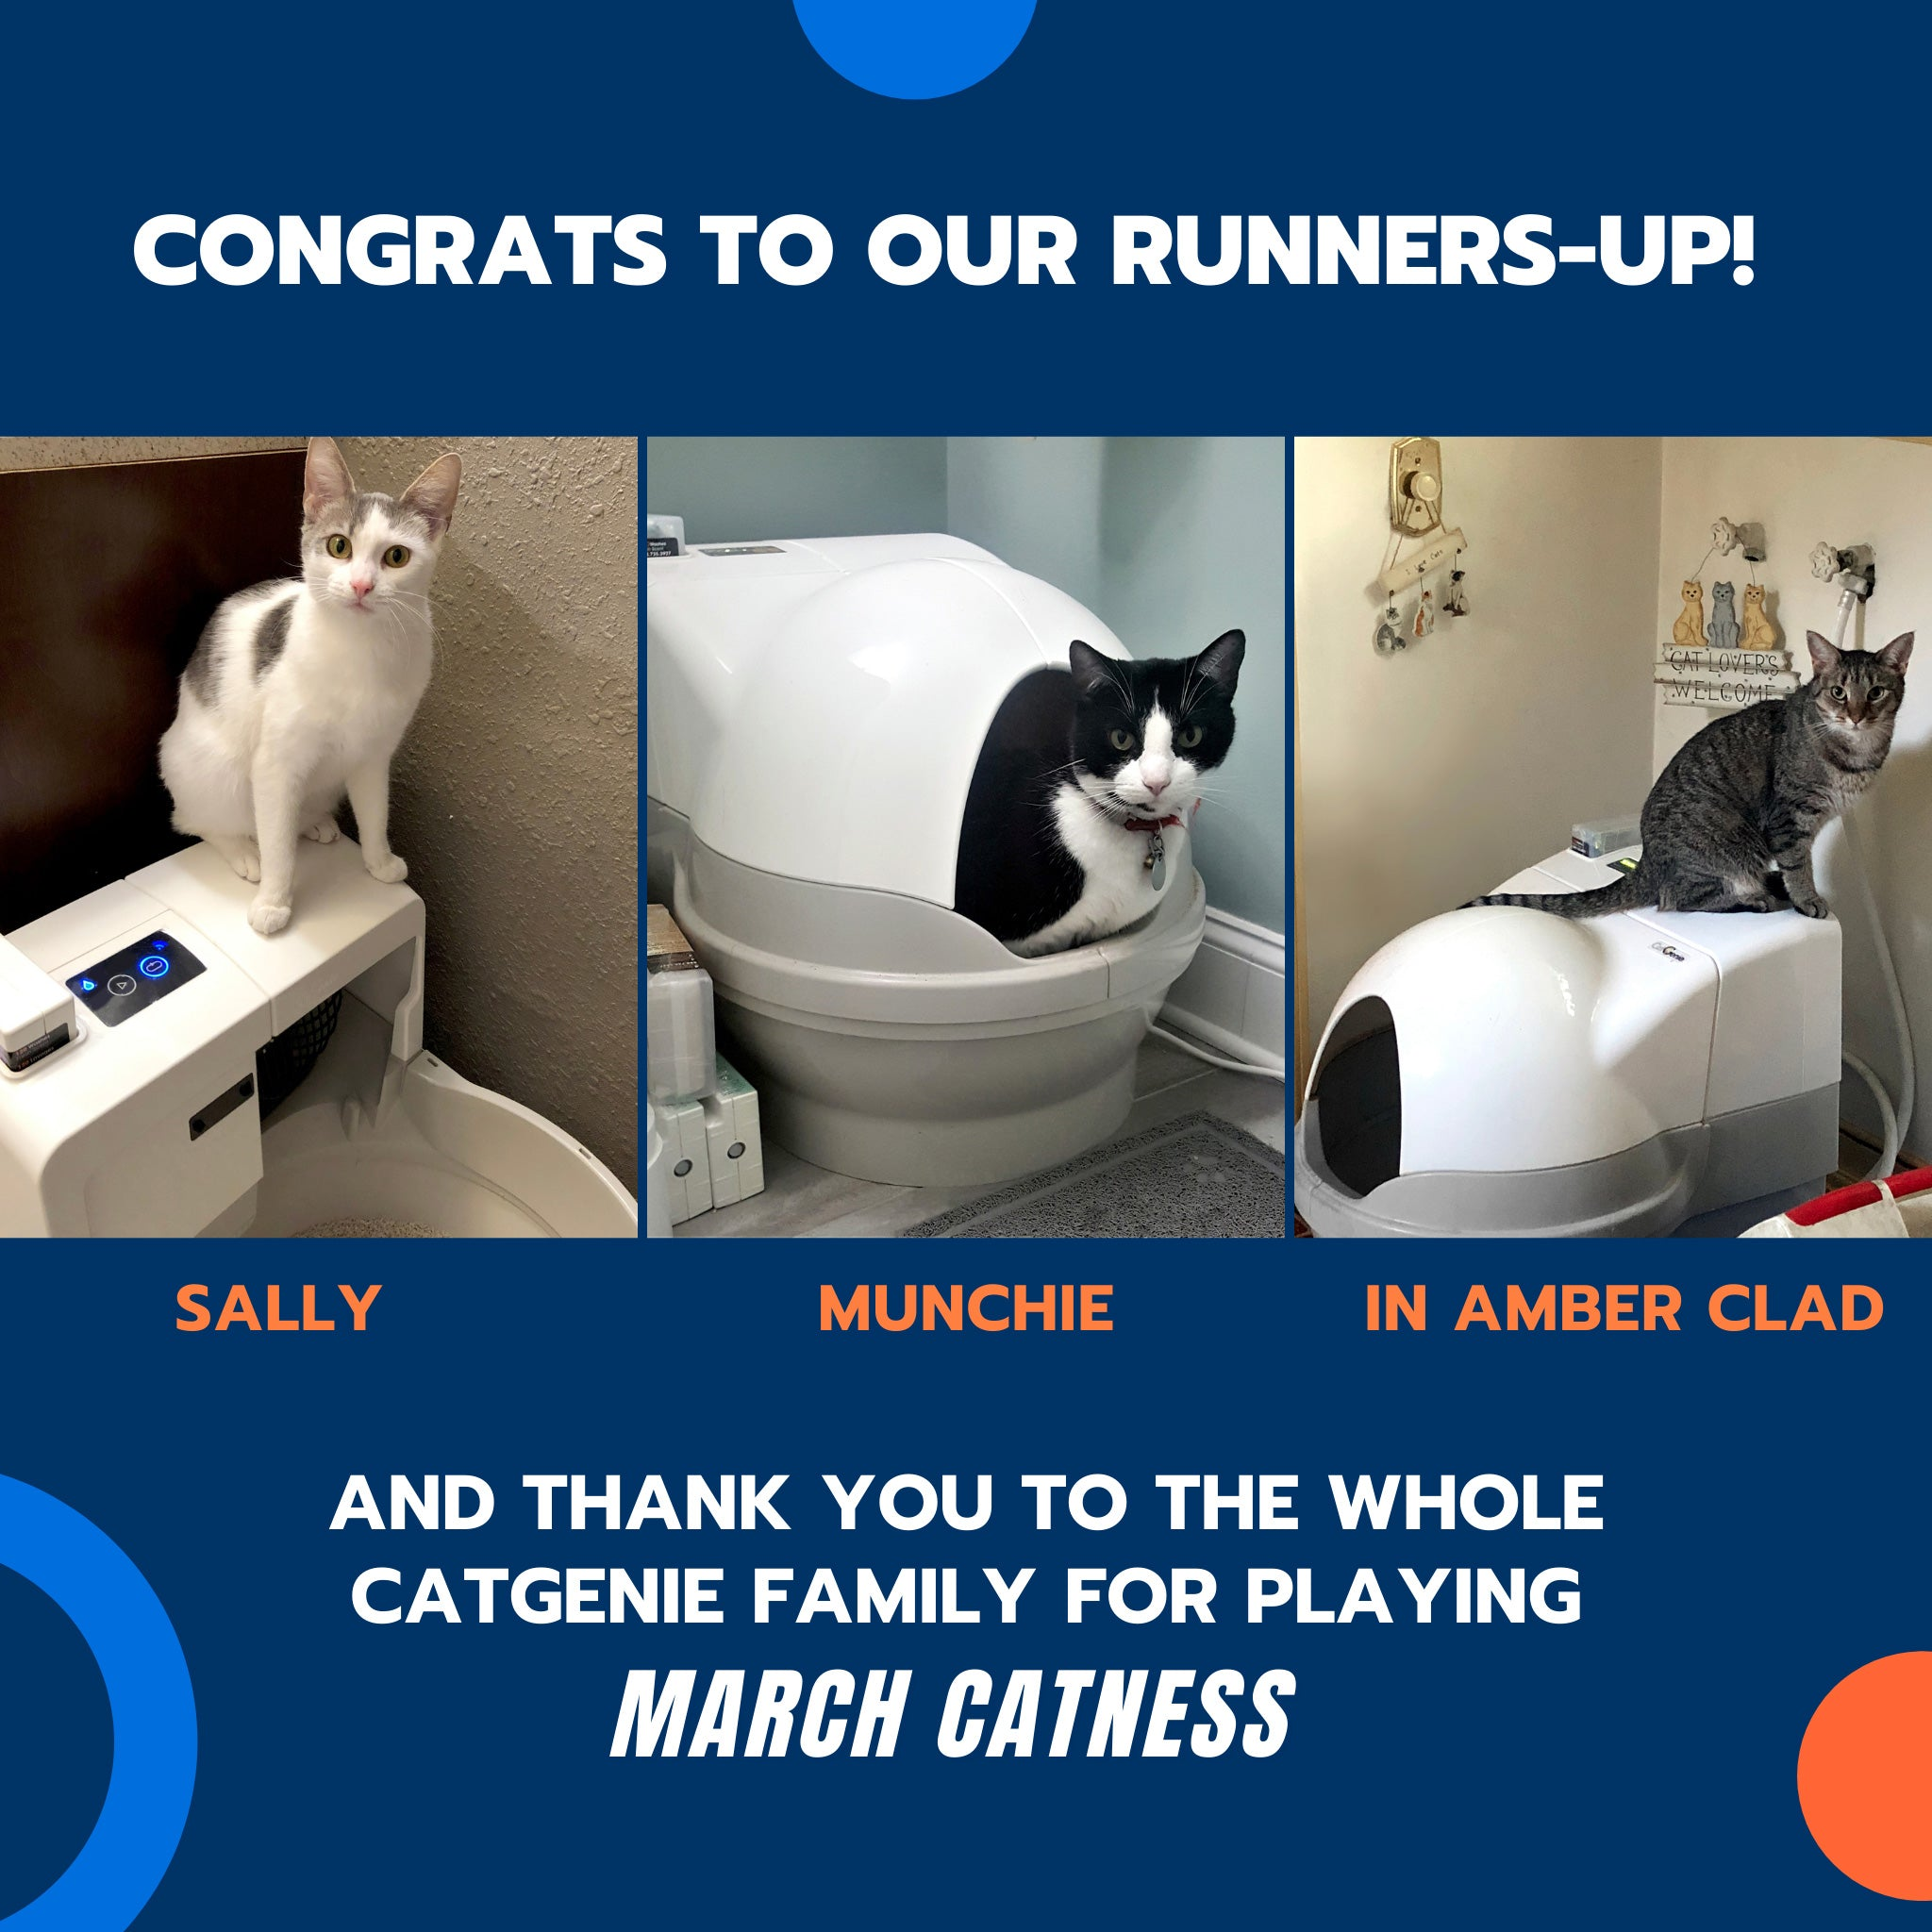 CONGratS to our runners-up! AND THANK YOU TO THE WHOLE CATGENIE FAMILY FOR PLAYING March Catness.